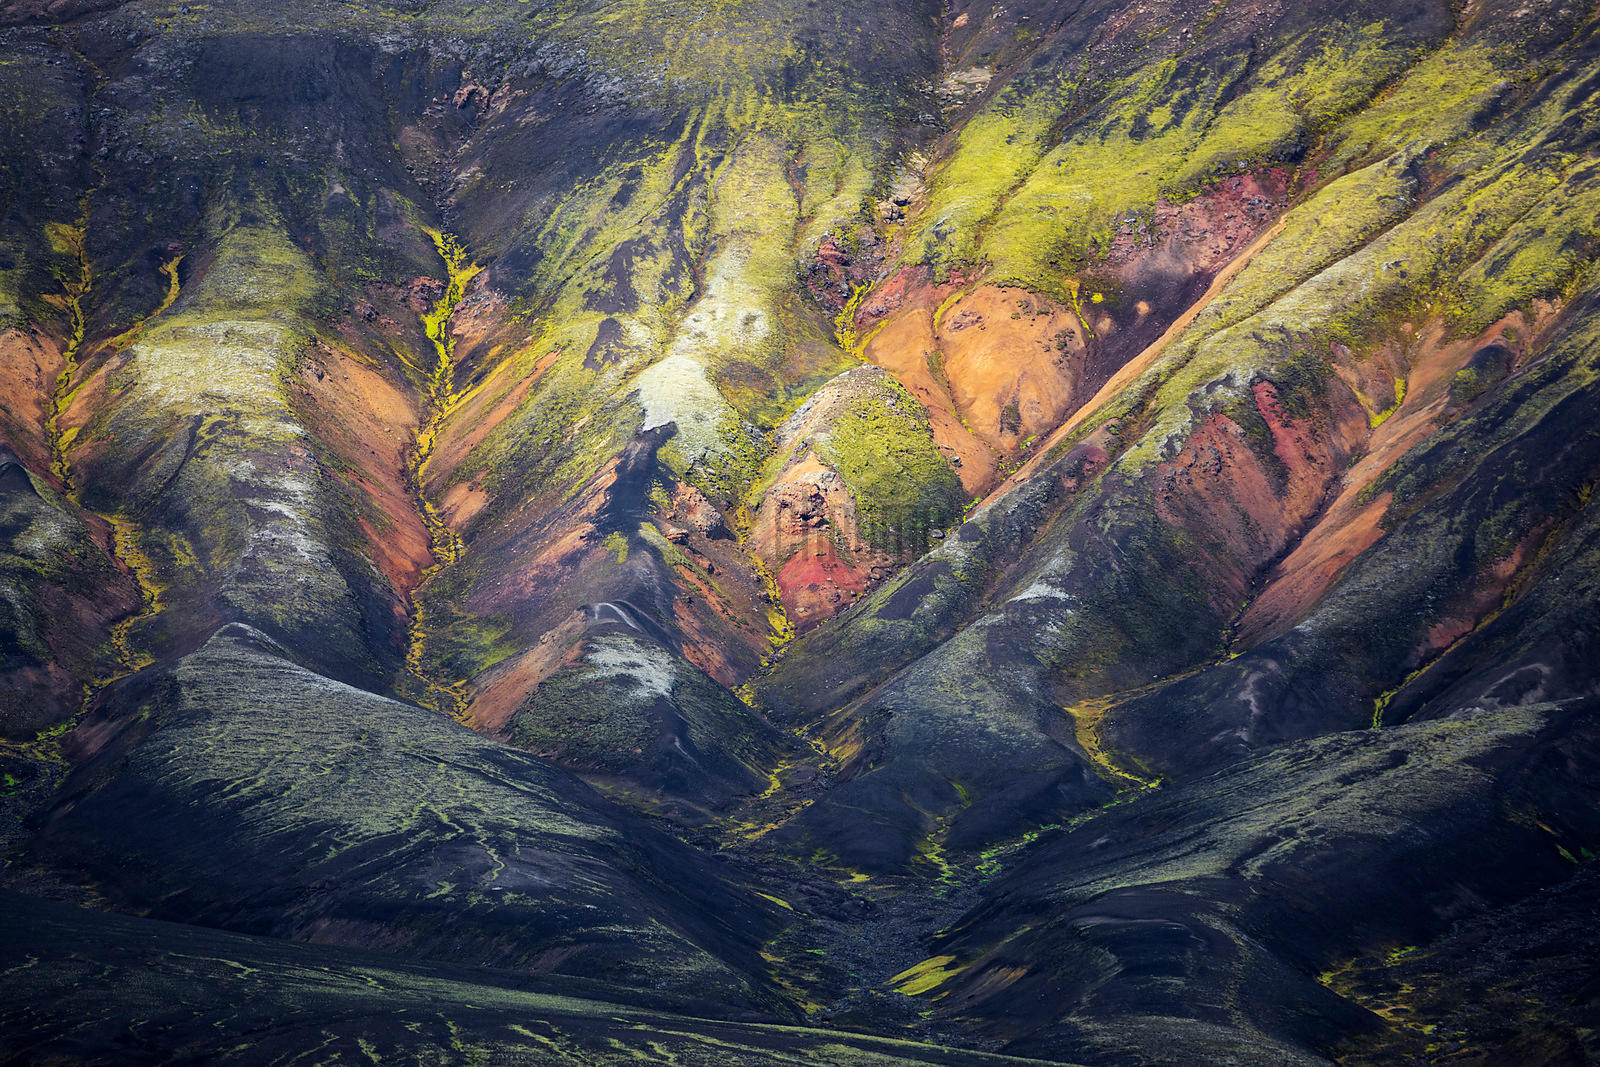 Mountain Textures in the Remote Highlands